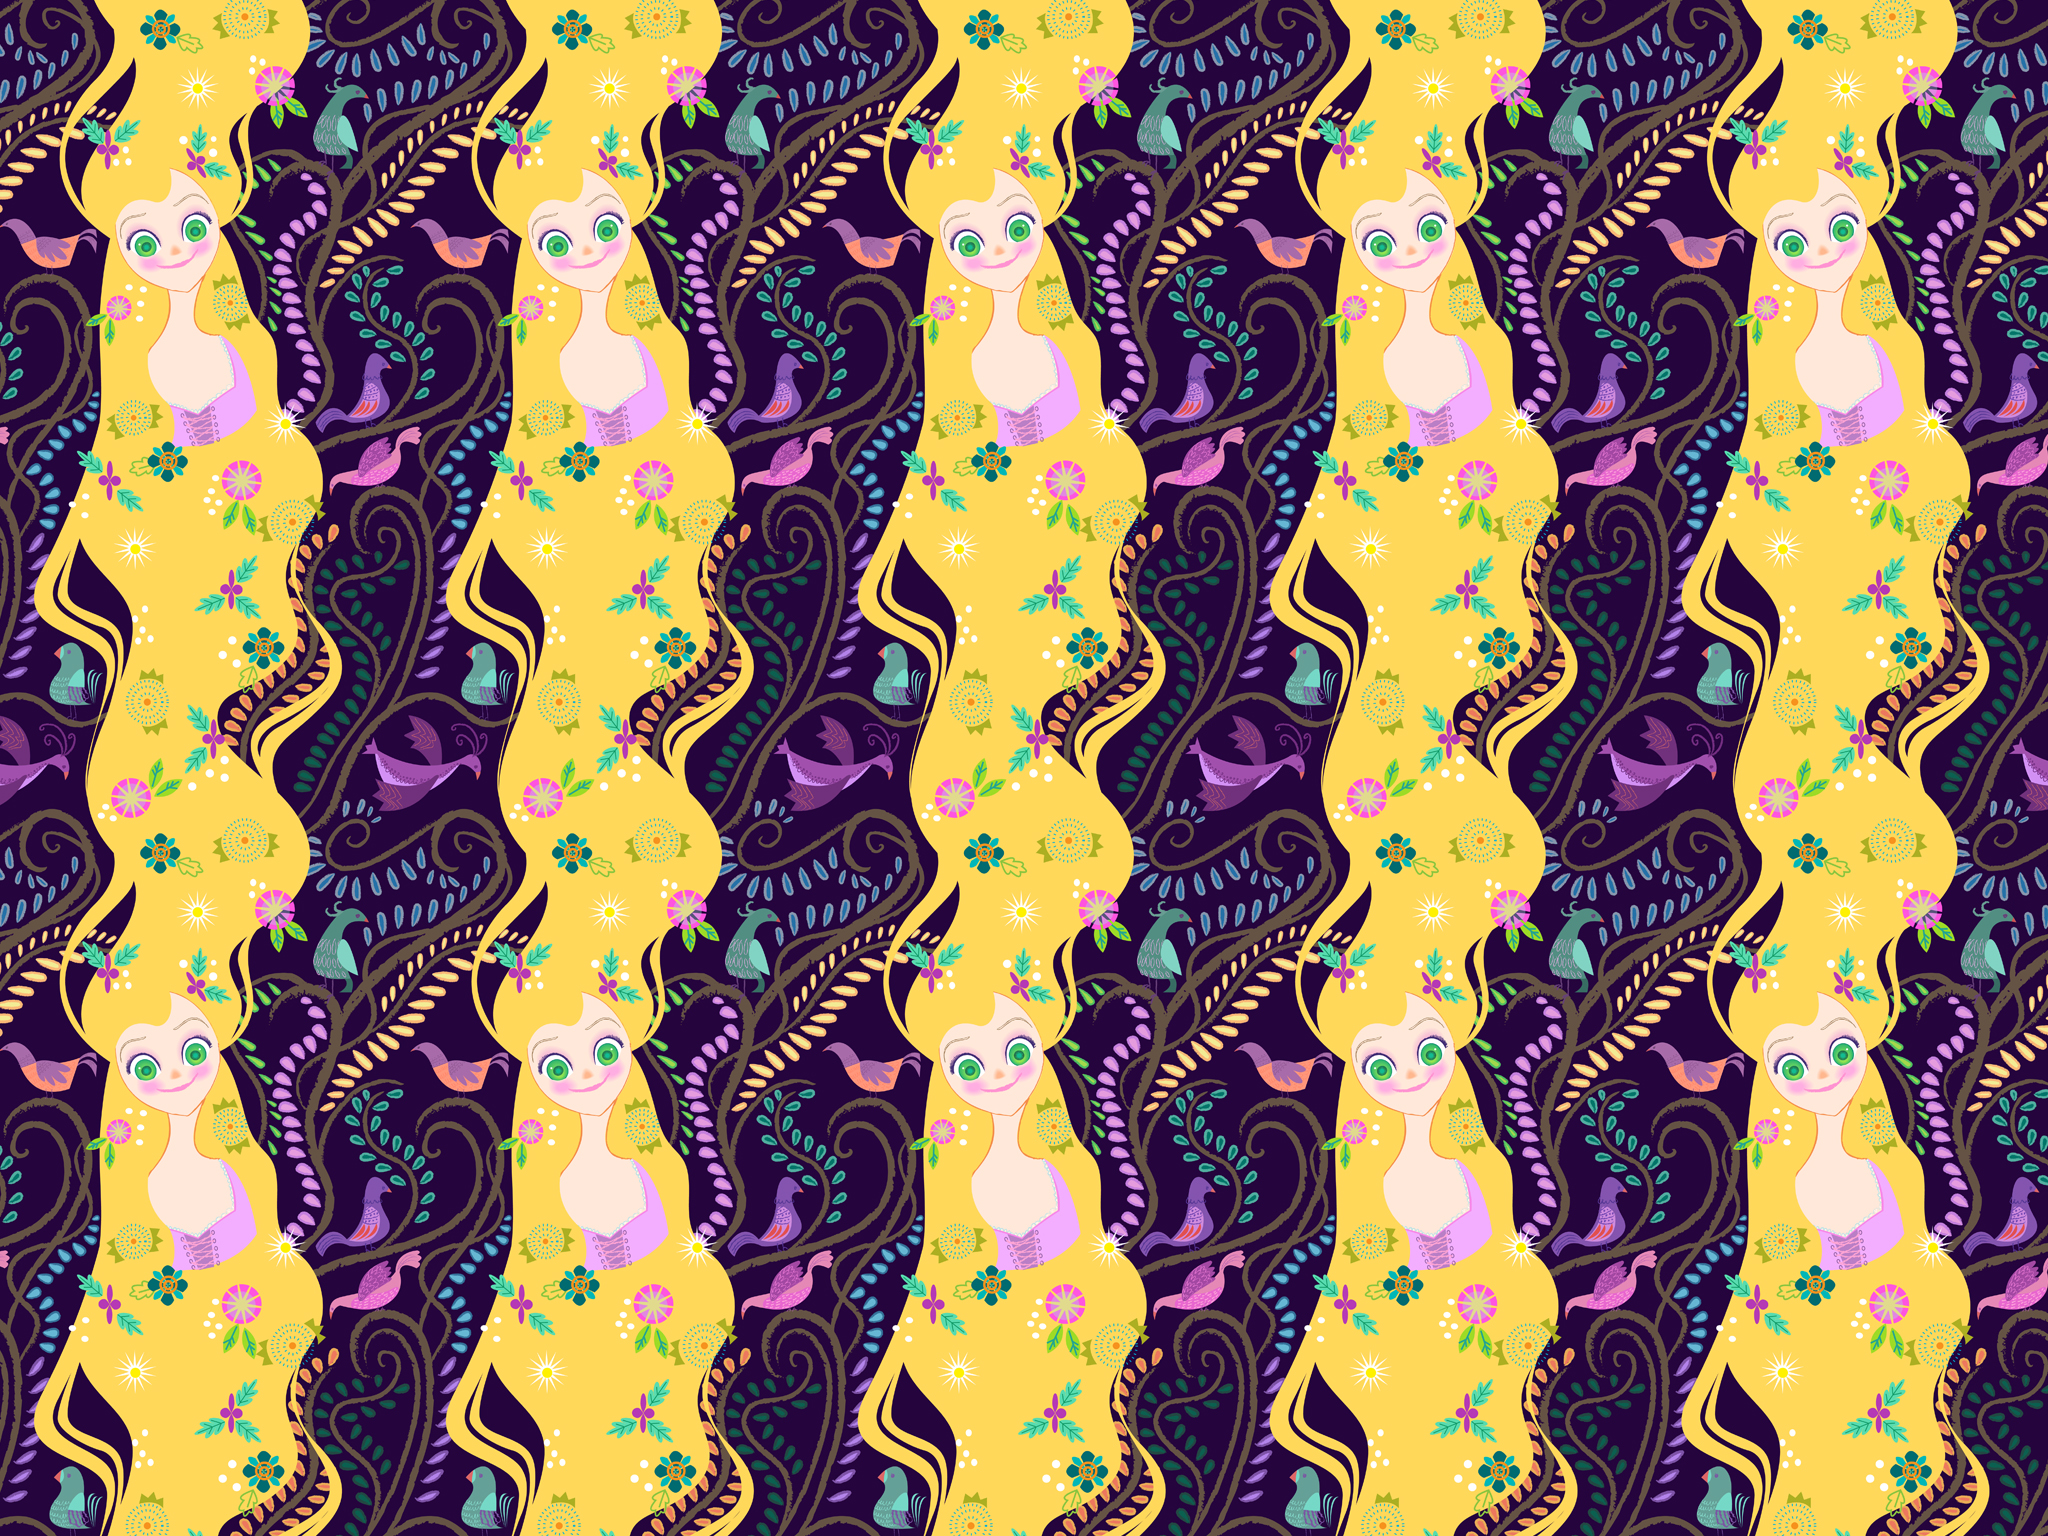 Rapunzel Wallpaper by spicysteweddemon